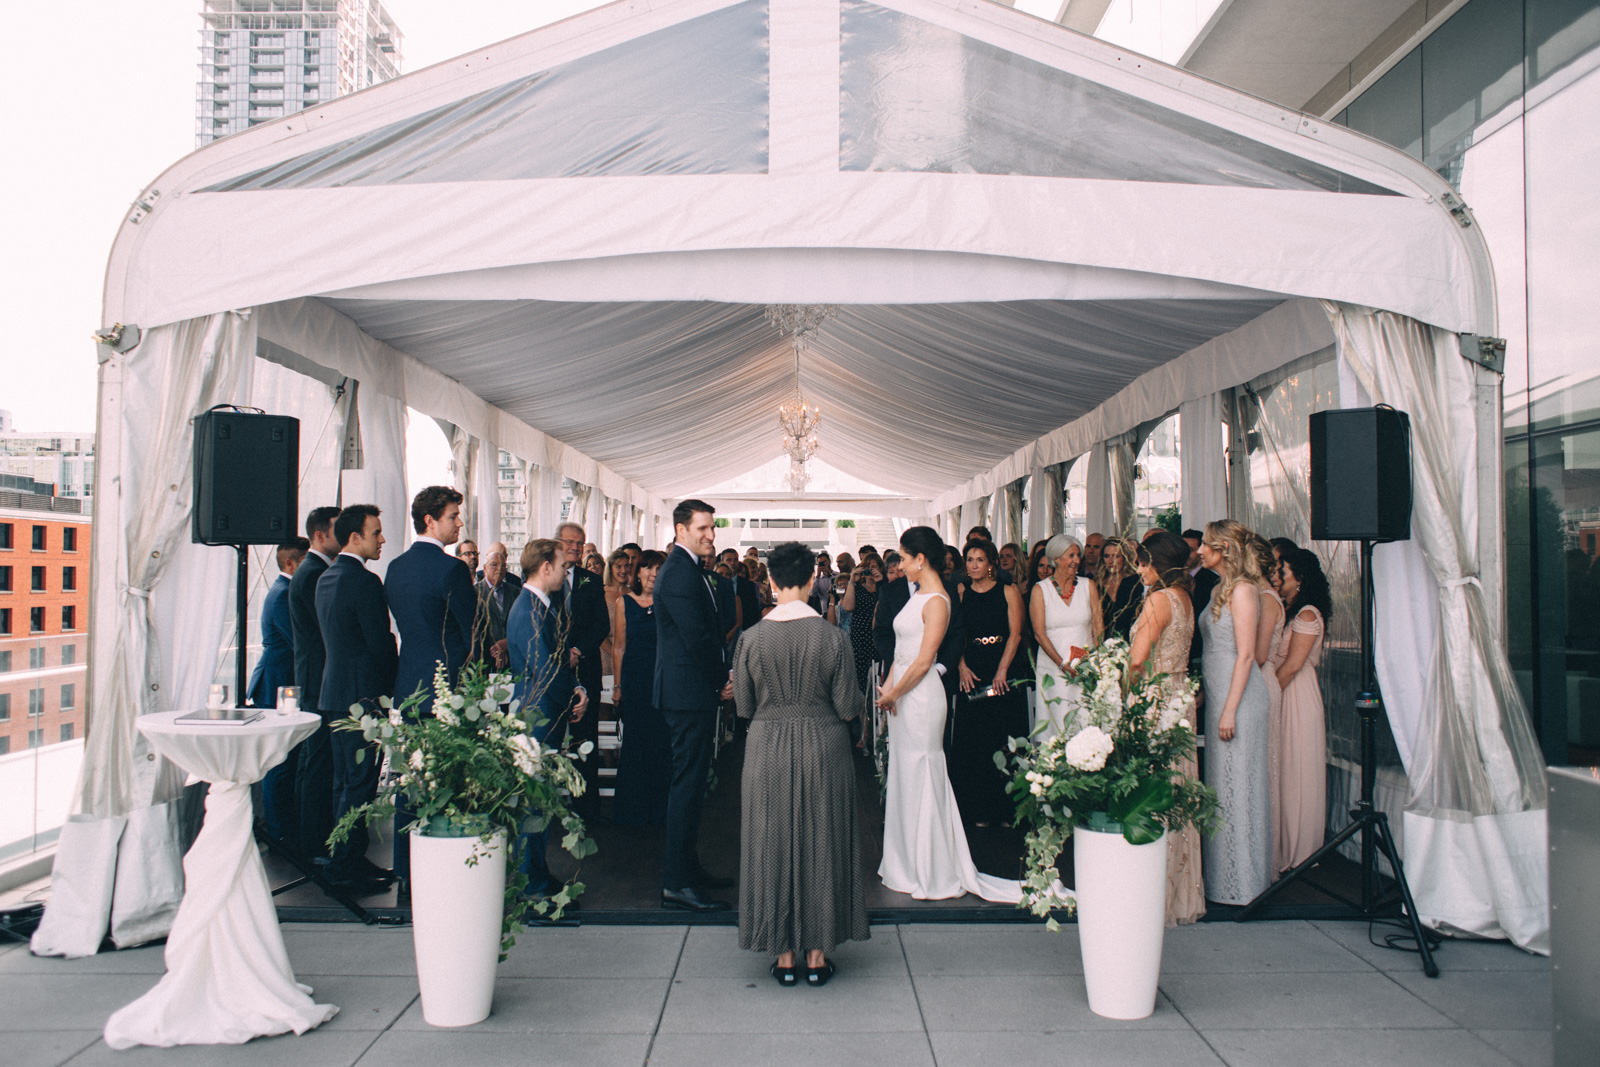 Malaparte-wedding-photography-Toronto-by-Sam-Wong-of-Visual-Cravings_50